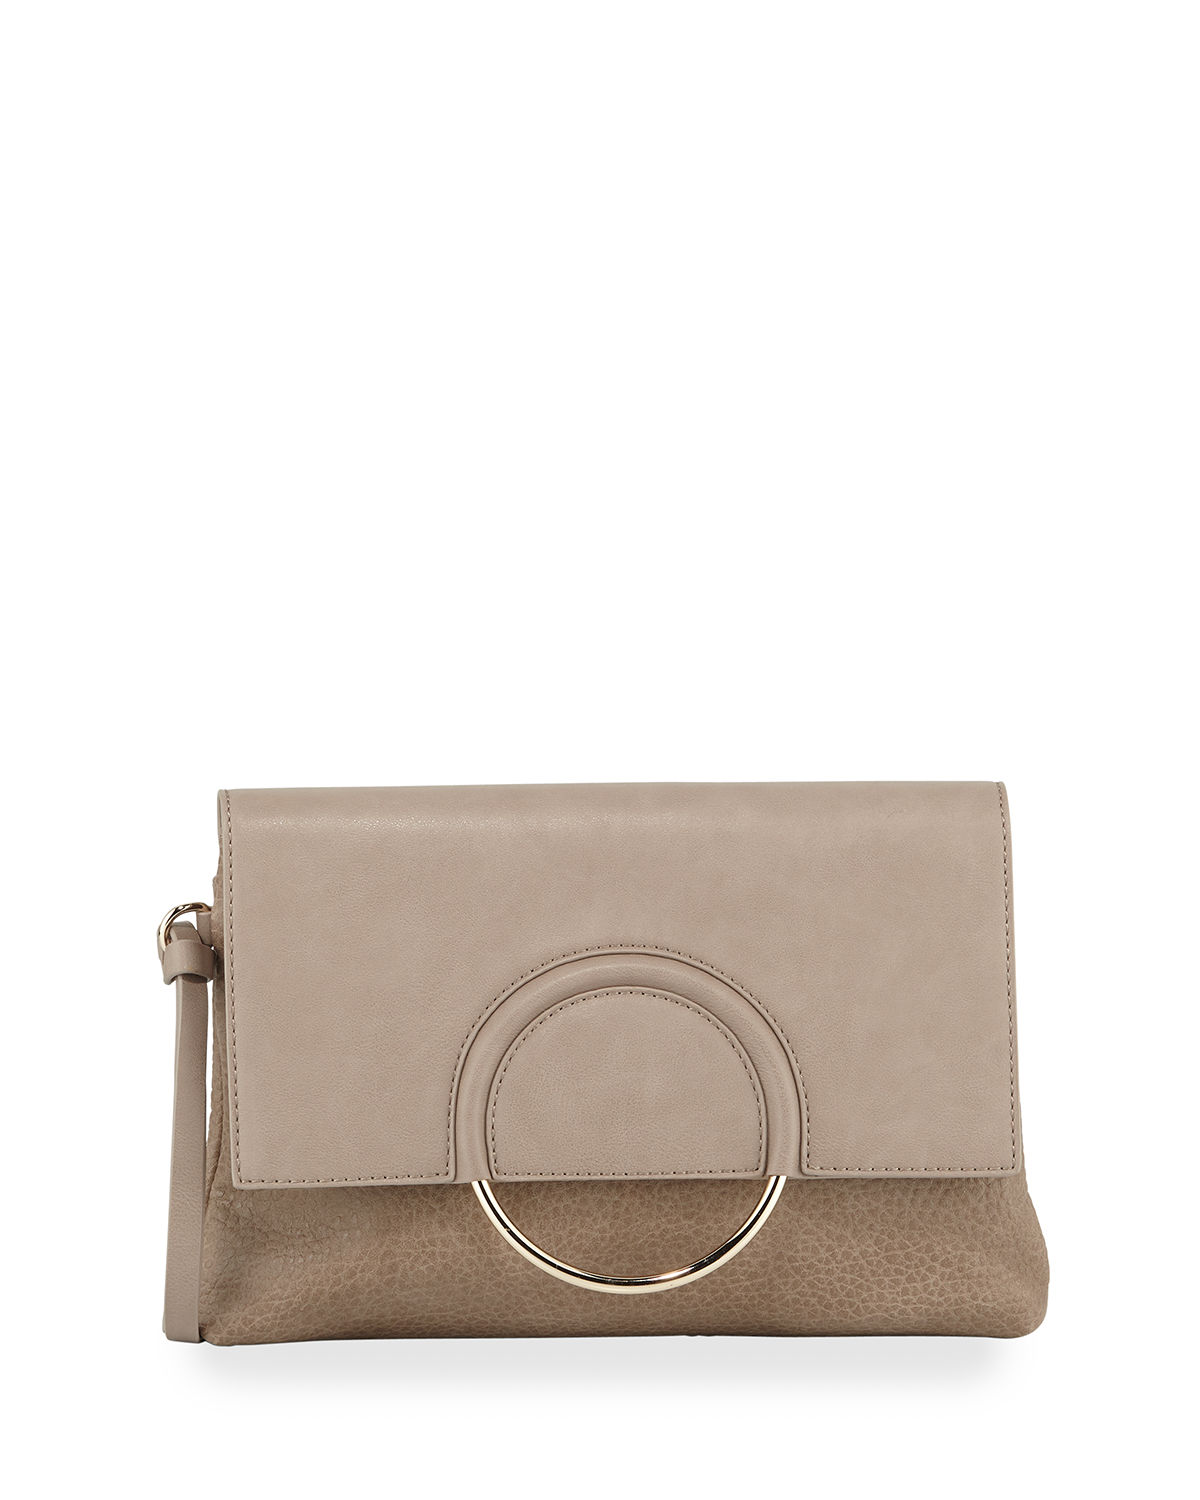 Urban Originals TEXTURED RING CLUTCH BAG